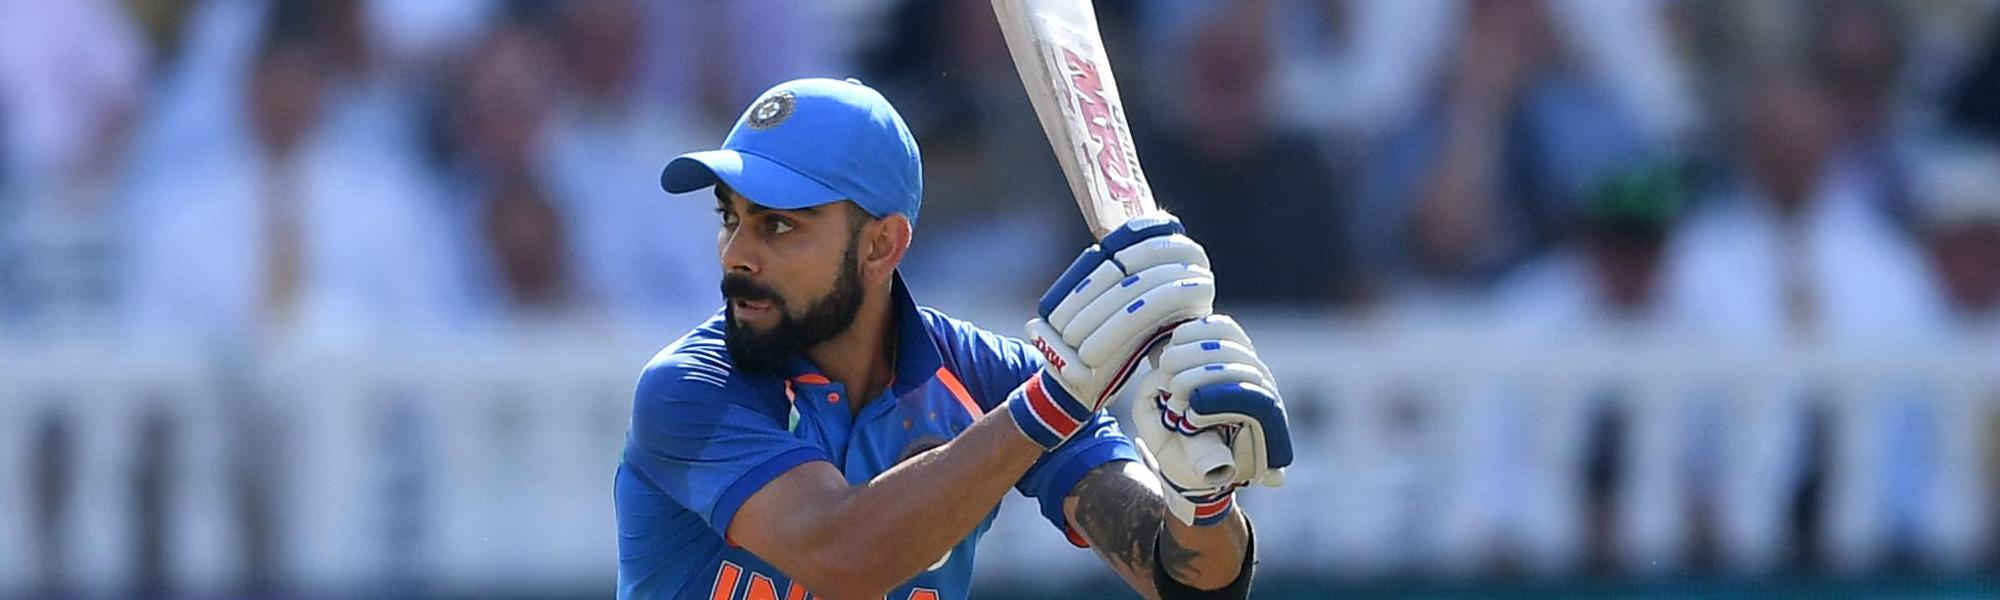 Following scores of 75, 45 and 71, Virat Kohli has strengthened his position at the top in the batsmen rankings